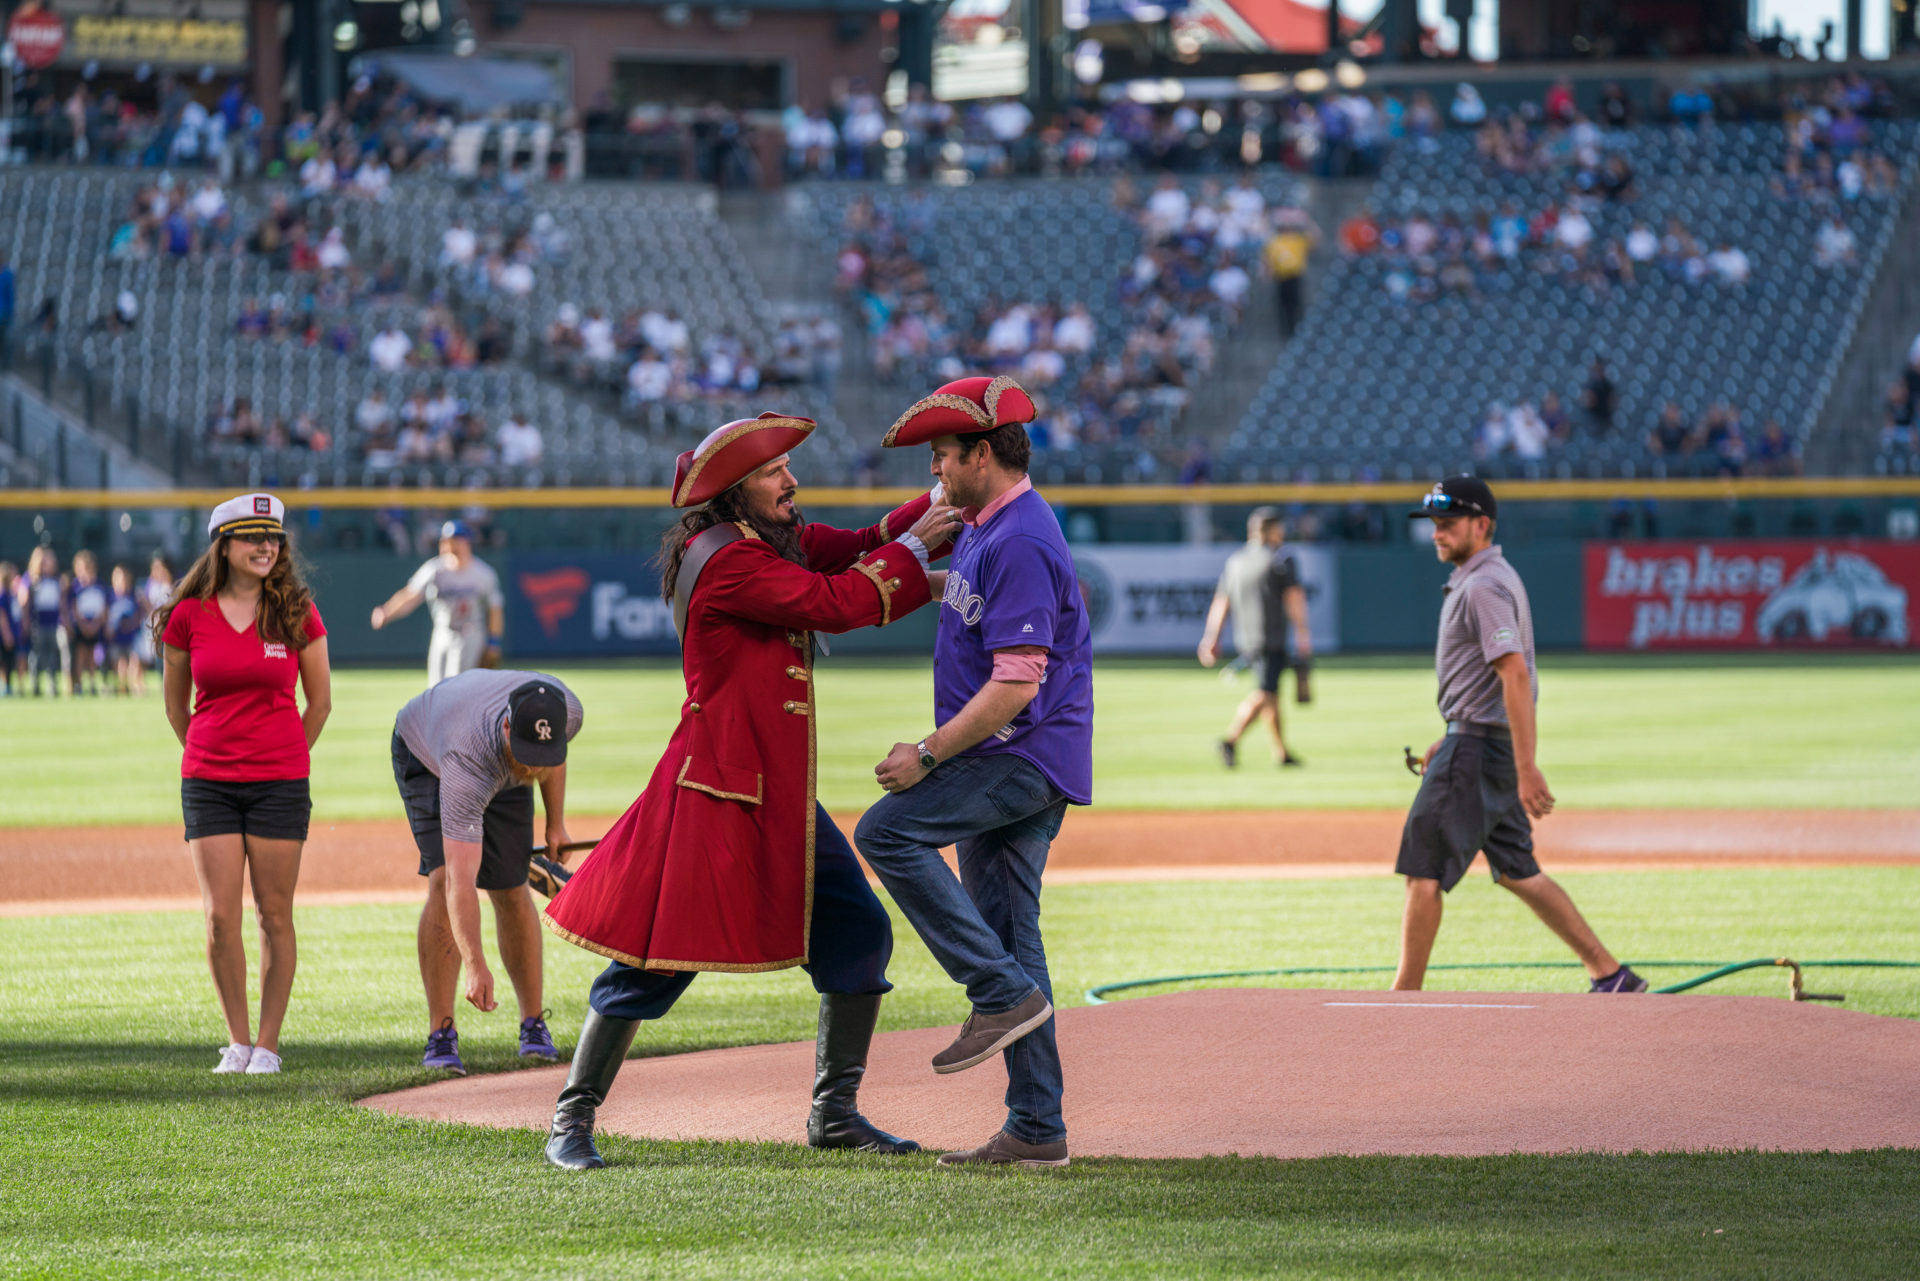 OHM-Captain Morgan-Rockies Game-Top Selects-334.jpg